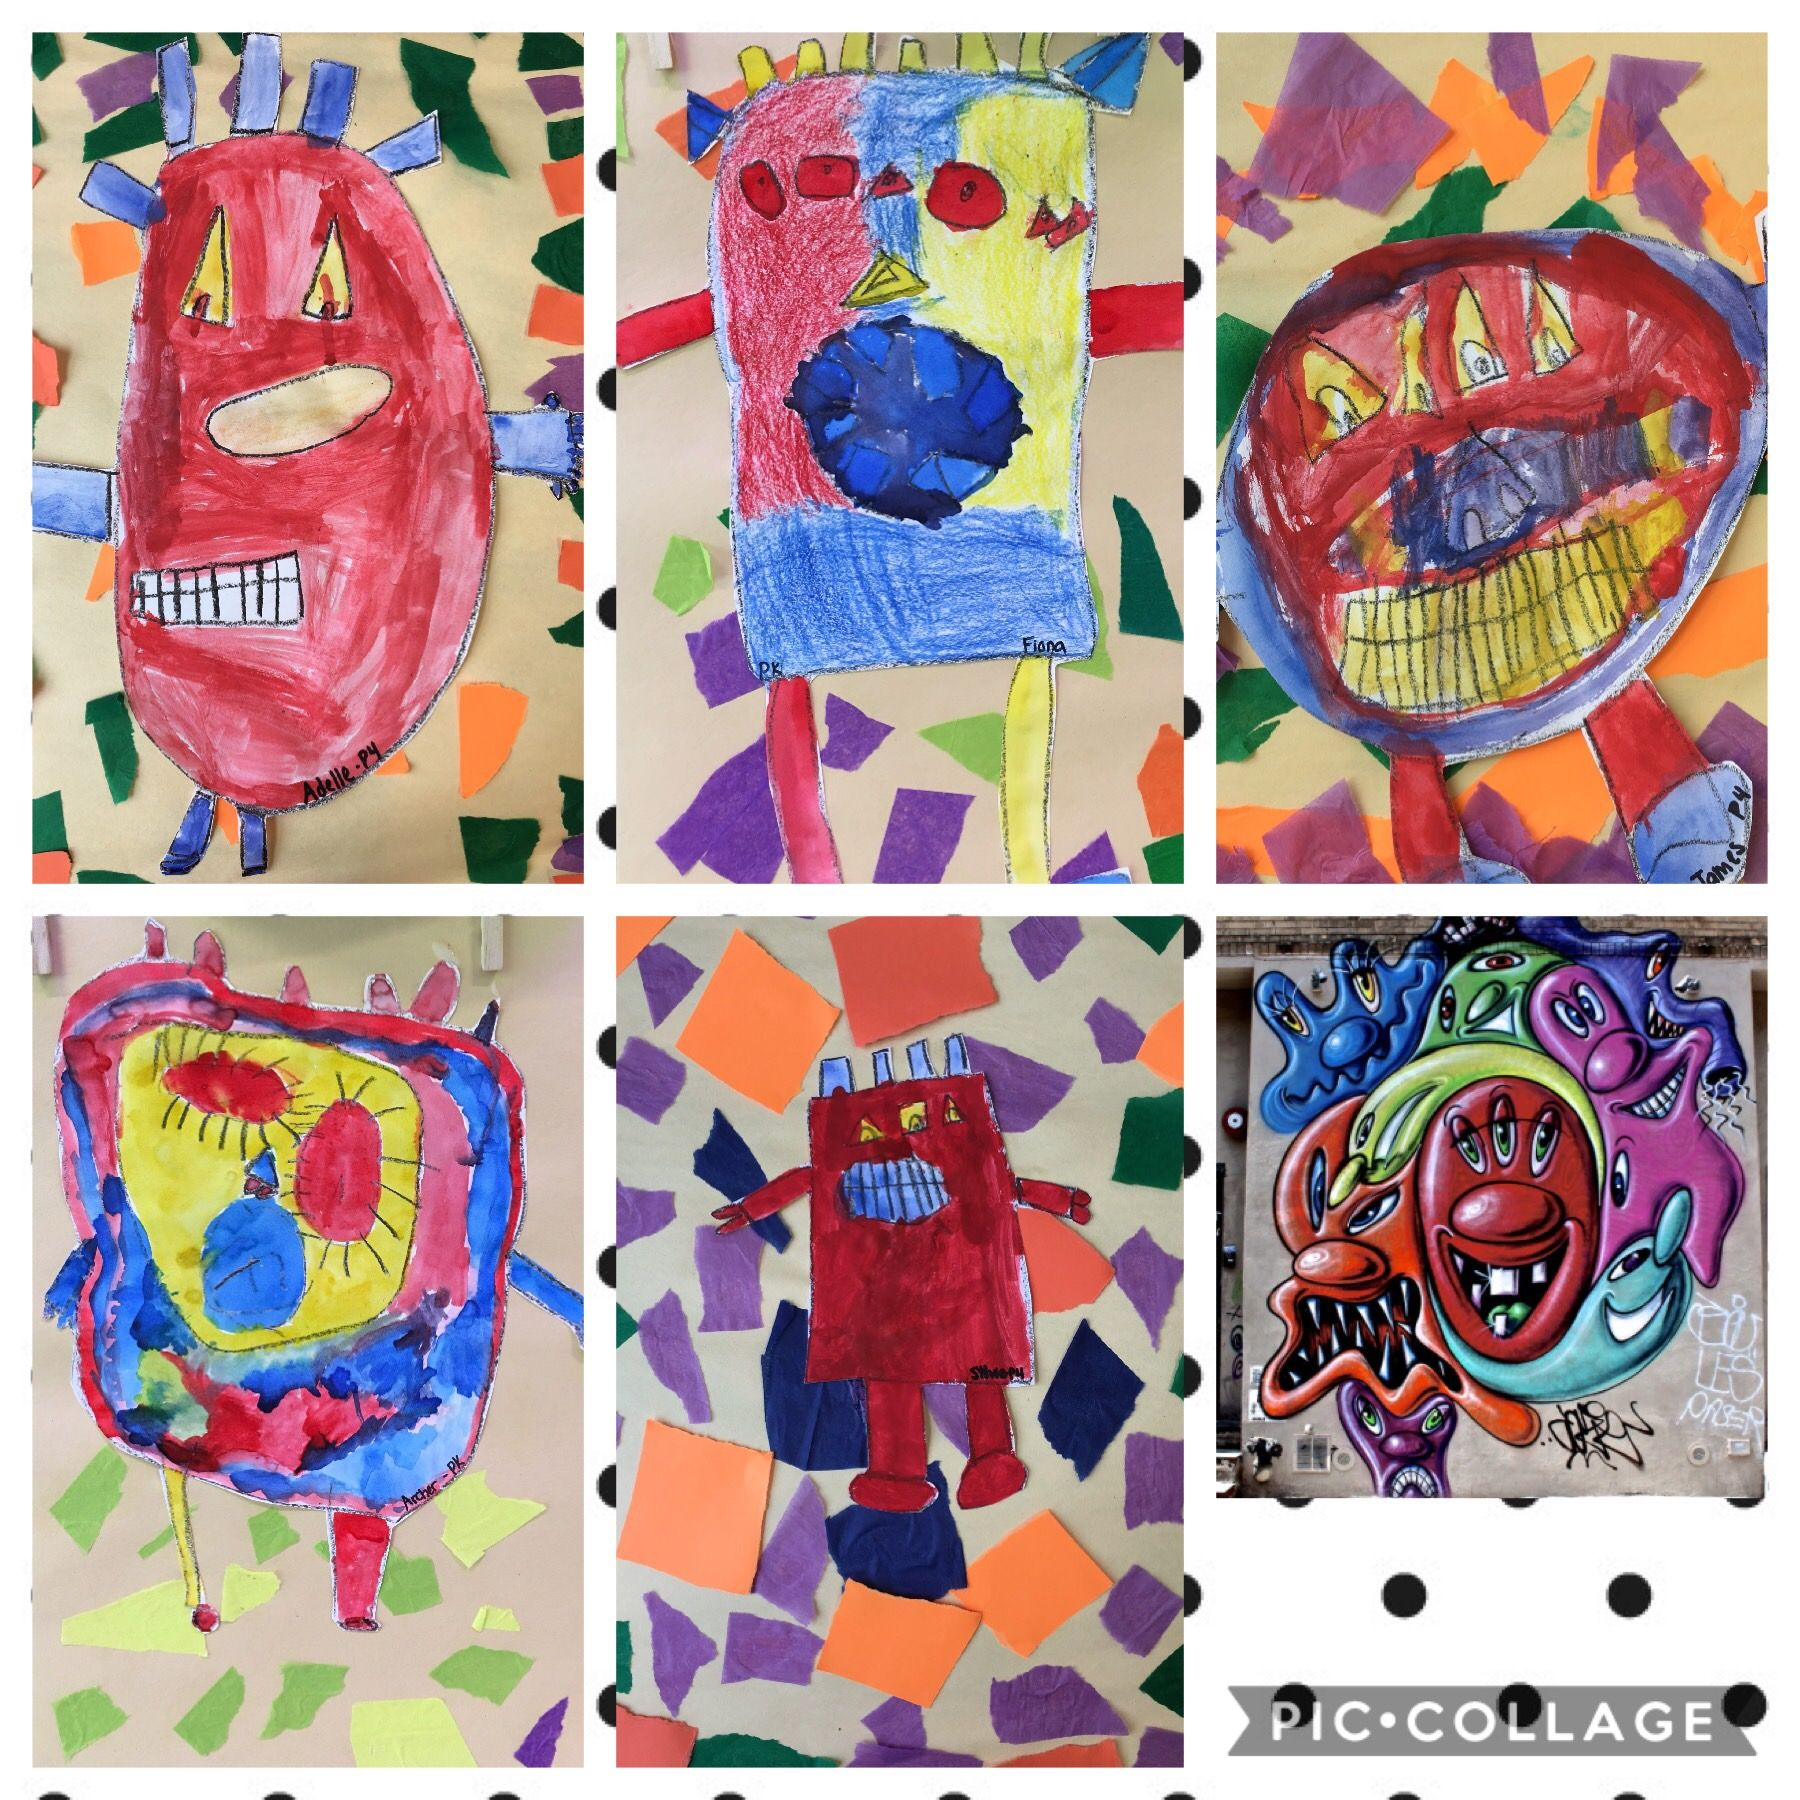 Graffiti artist from nyc pre k students geometric shapes primary color in painting and secondary colors in the collaged background